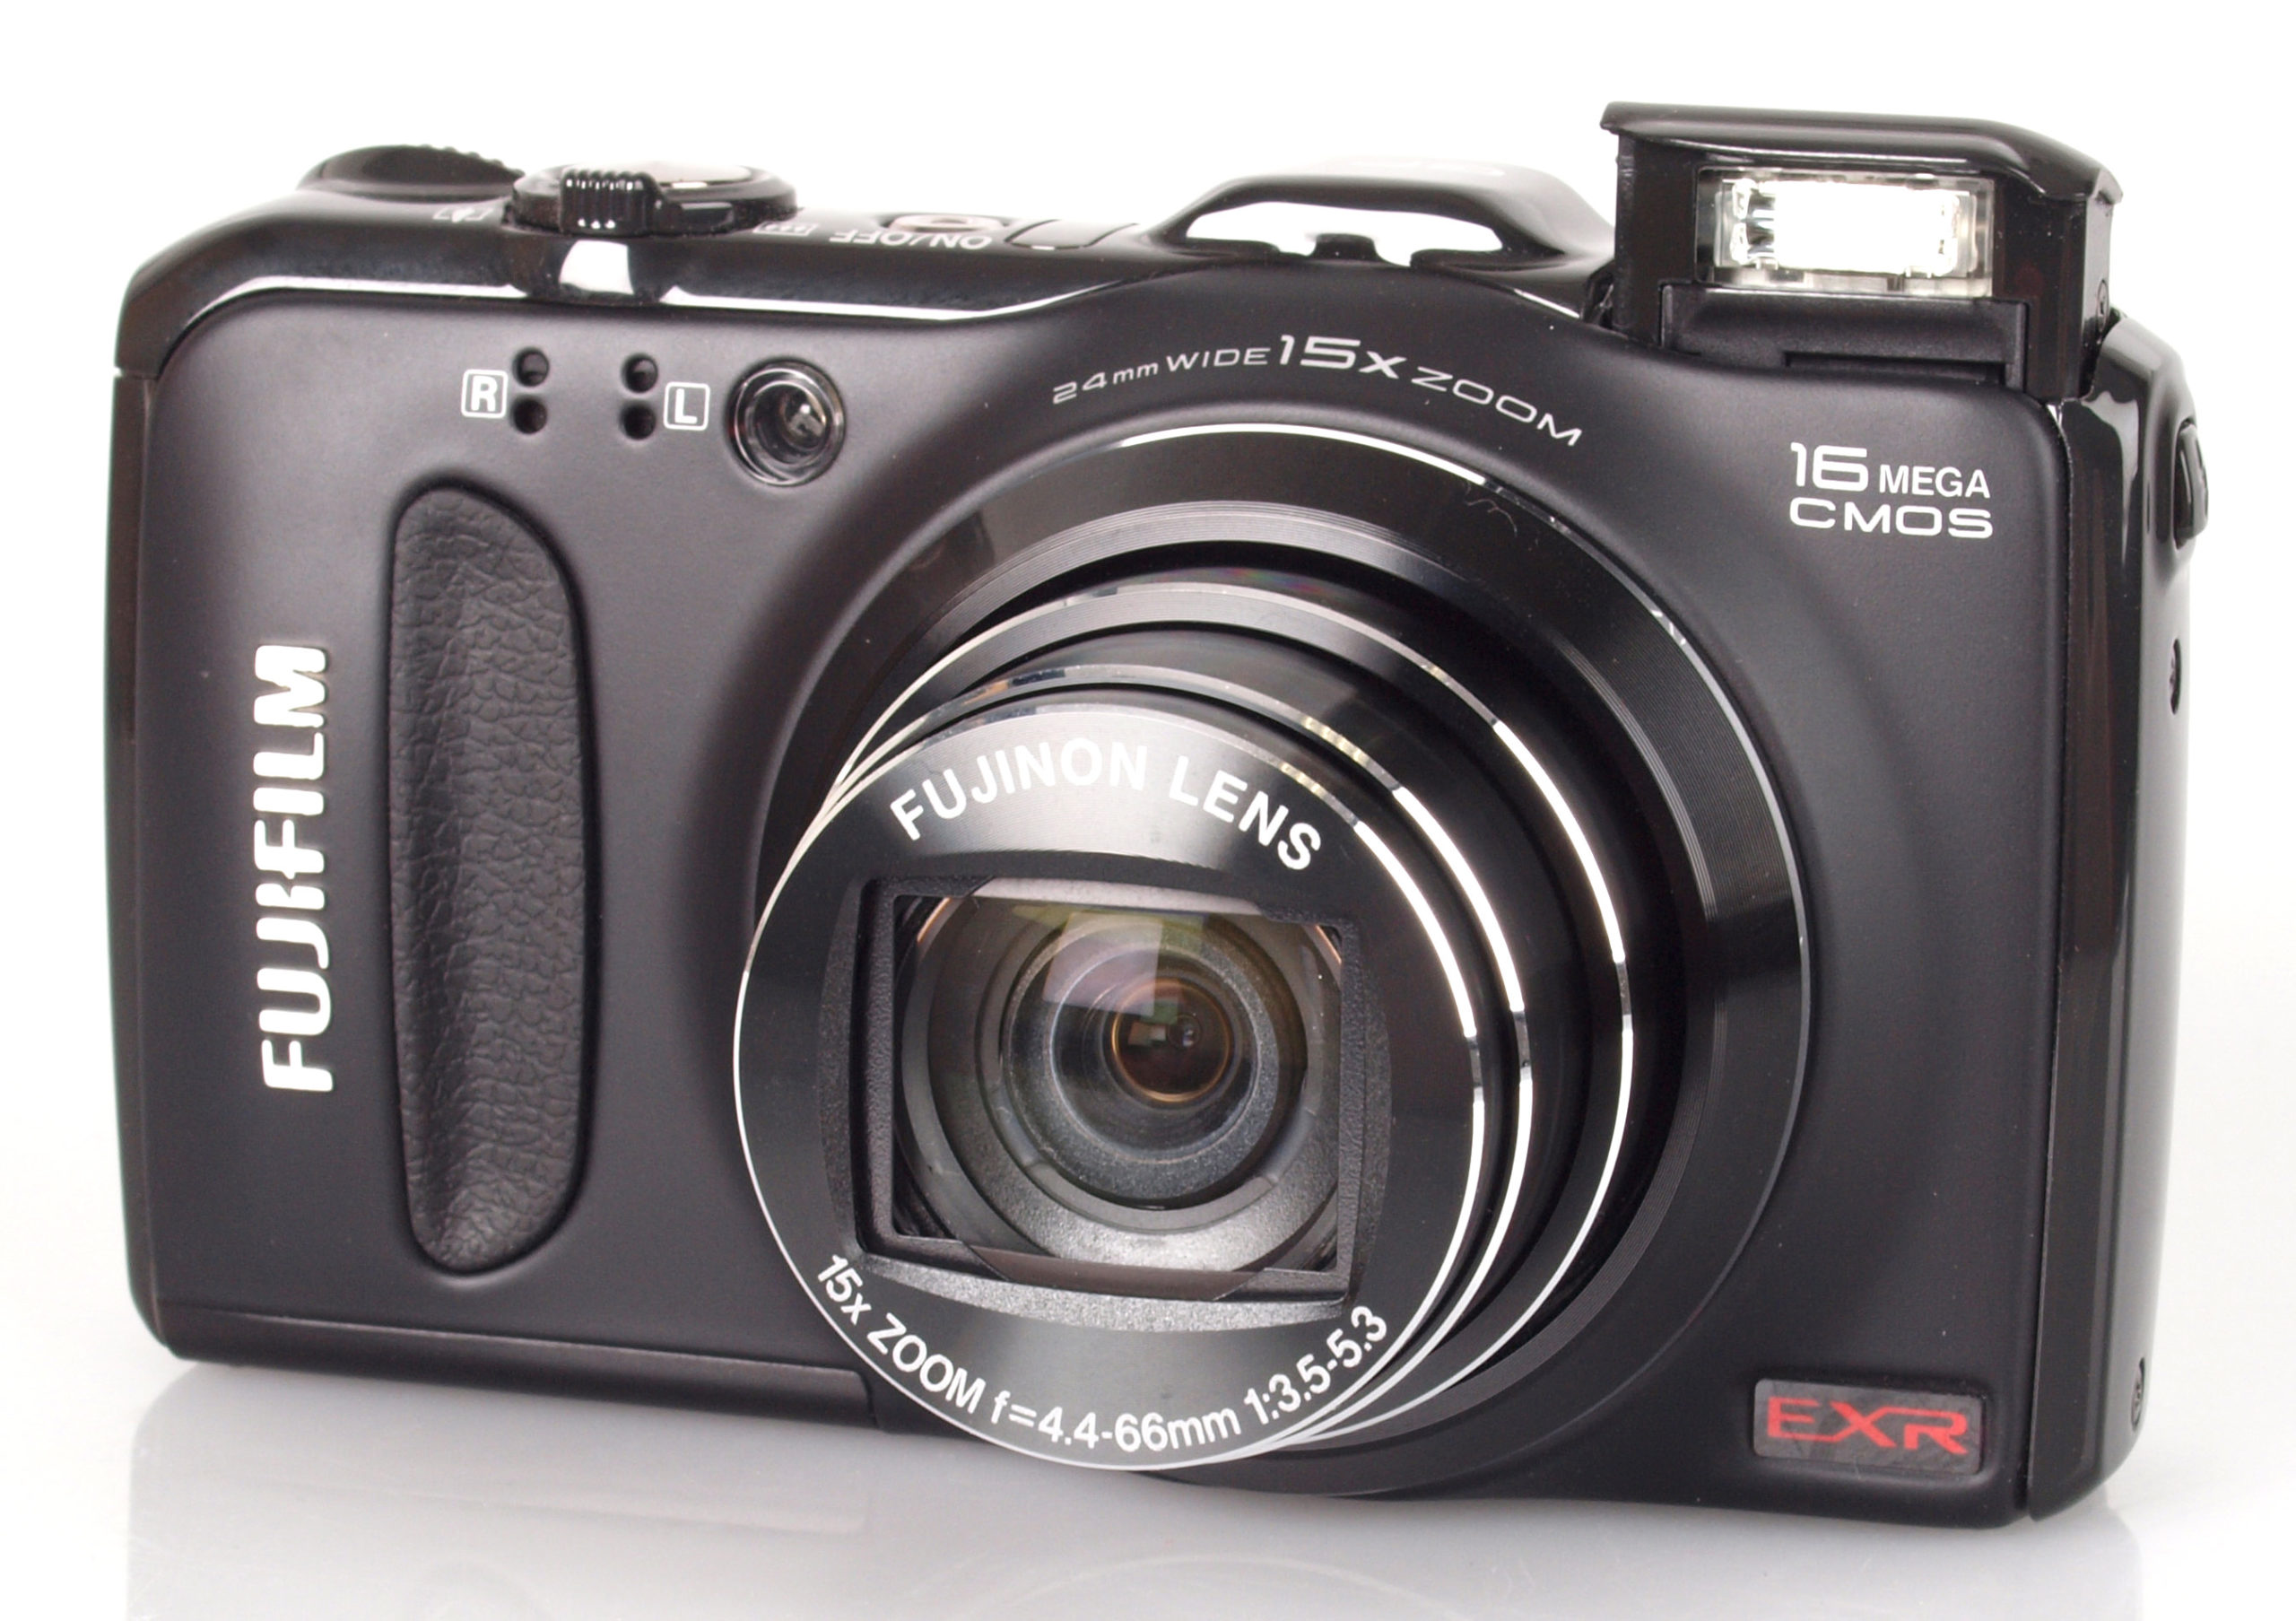 Fujifilm FinePix F600EXR Camera